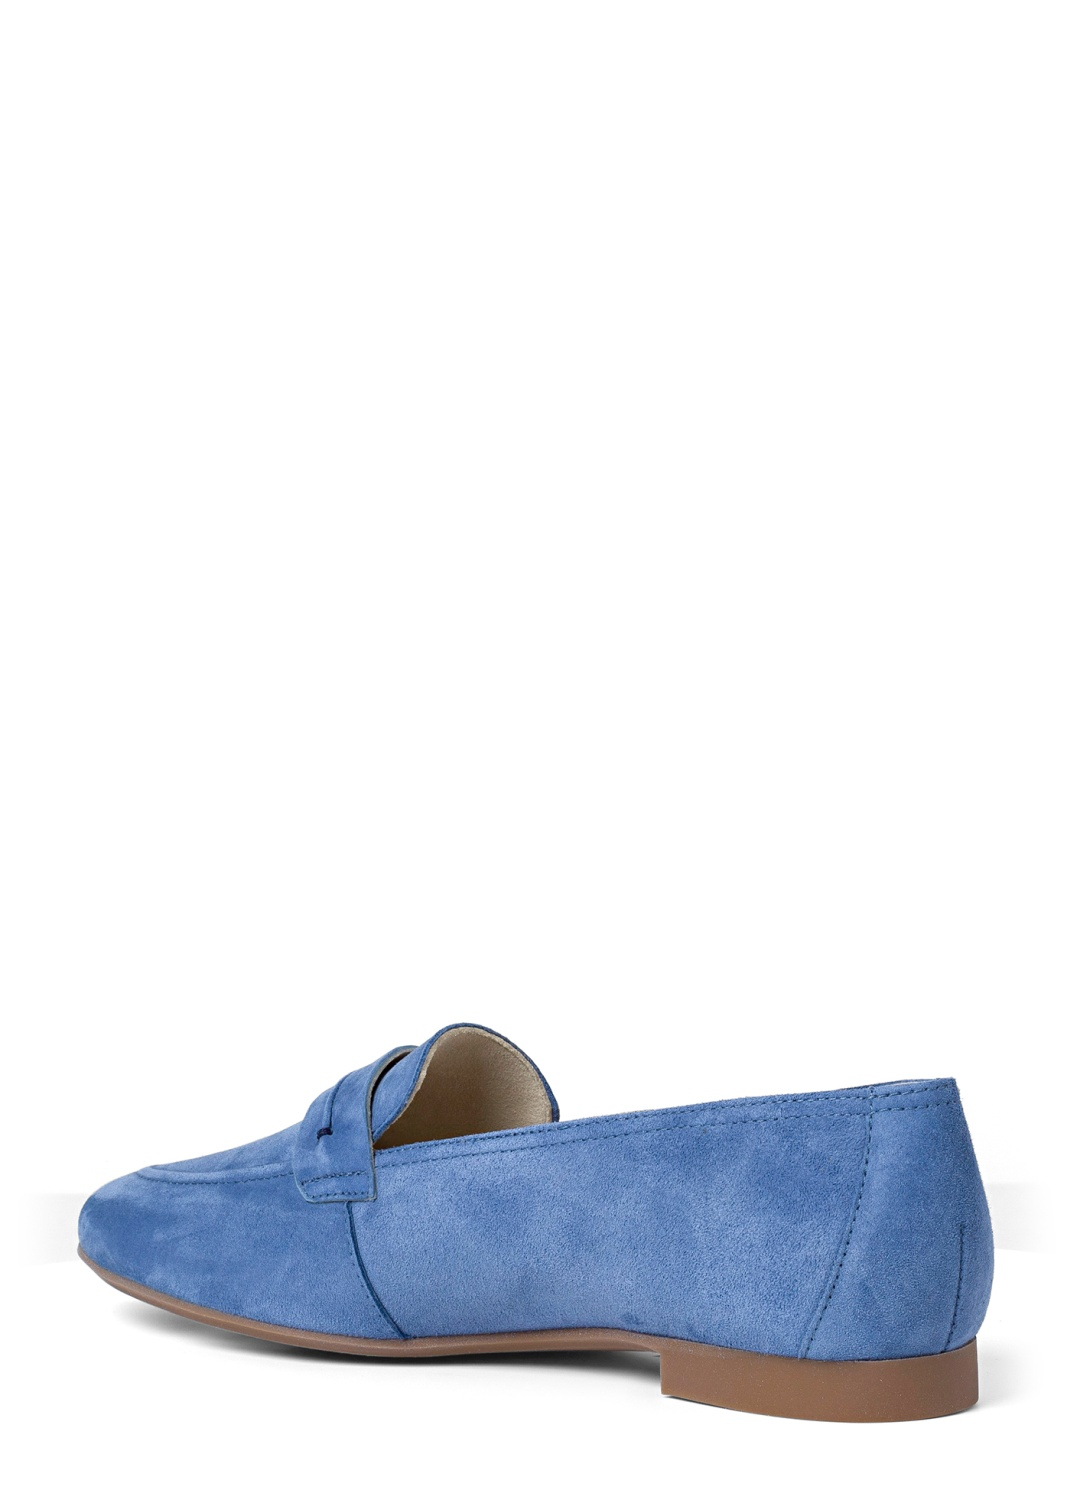 17_Classic Loafer Suede image number 2